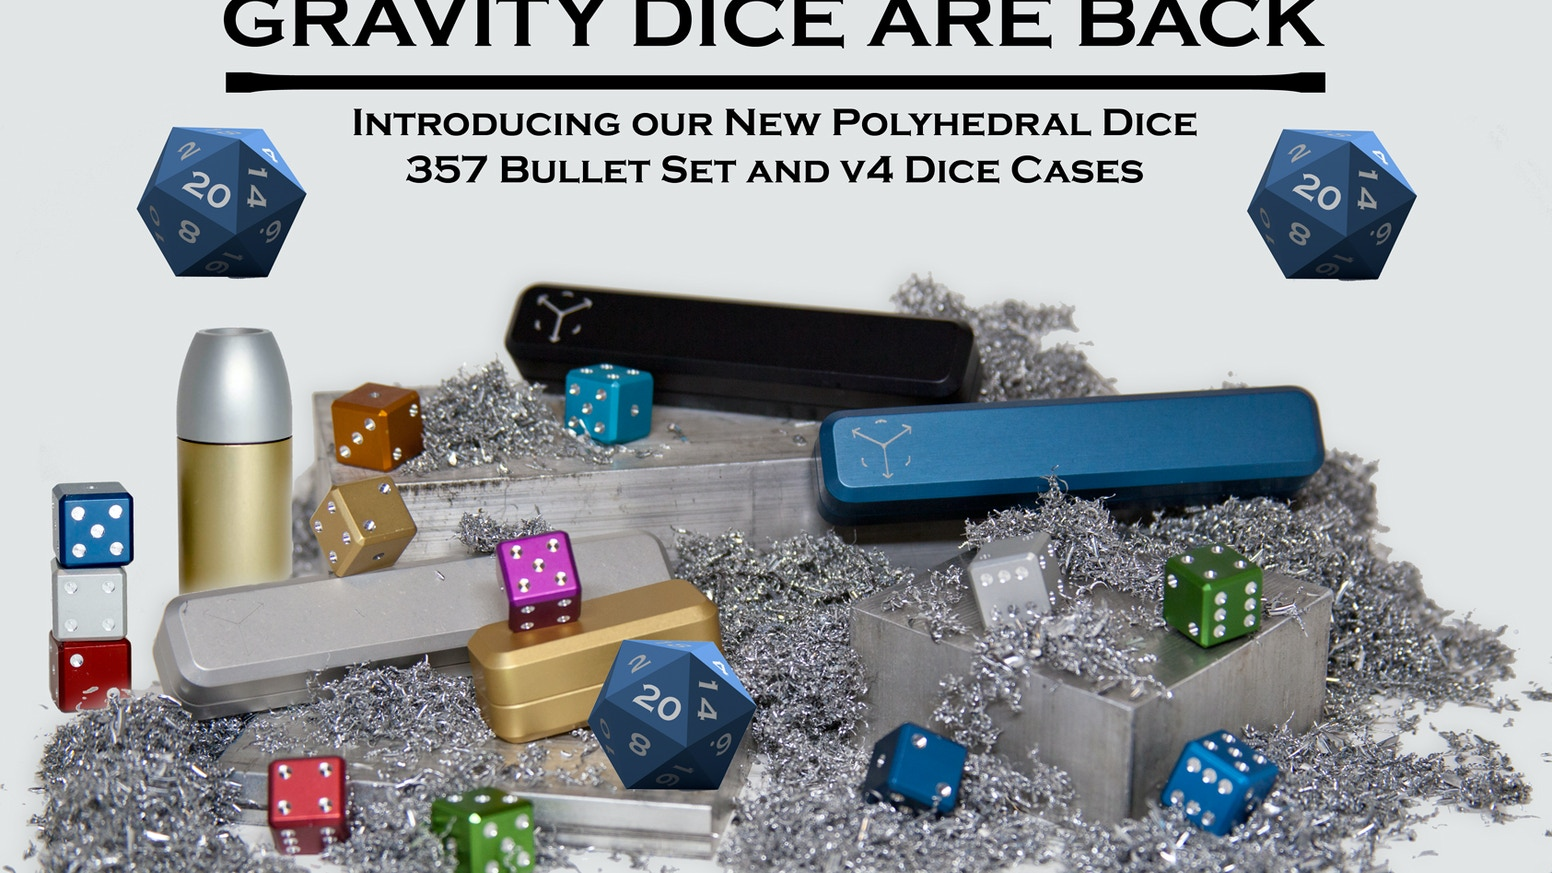 Precision Aluminum Gaming Dice. Featuring Polyhedral Dice,  357 Bullet Case and our new v4 cases. D20, D10, D8 Dungeons and Dragons